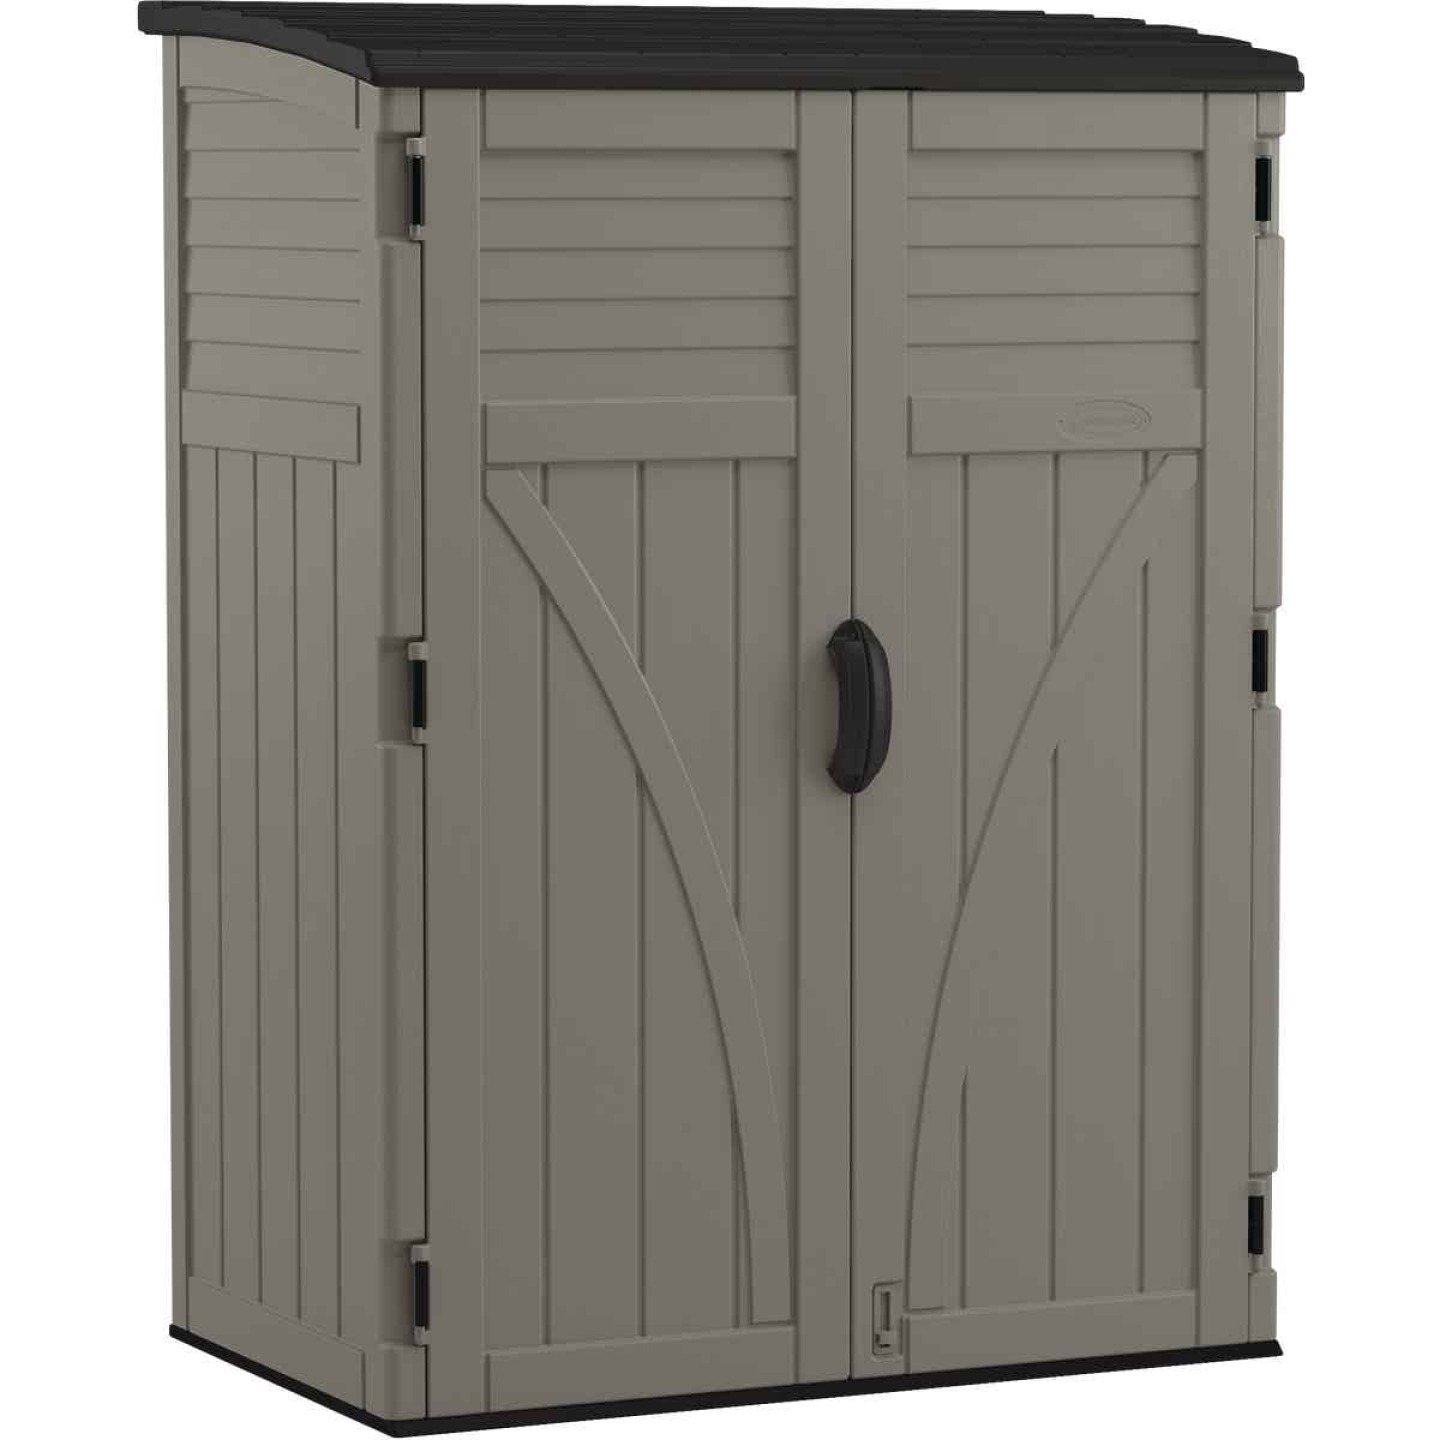 Suncast 54 Cu. Ft. Vertical Storage Shed Image 1